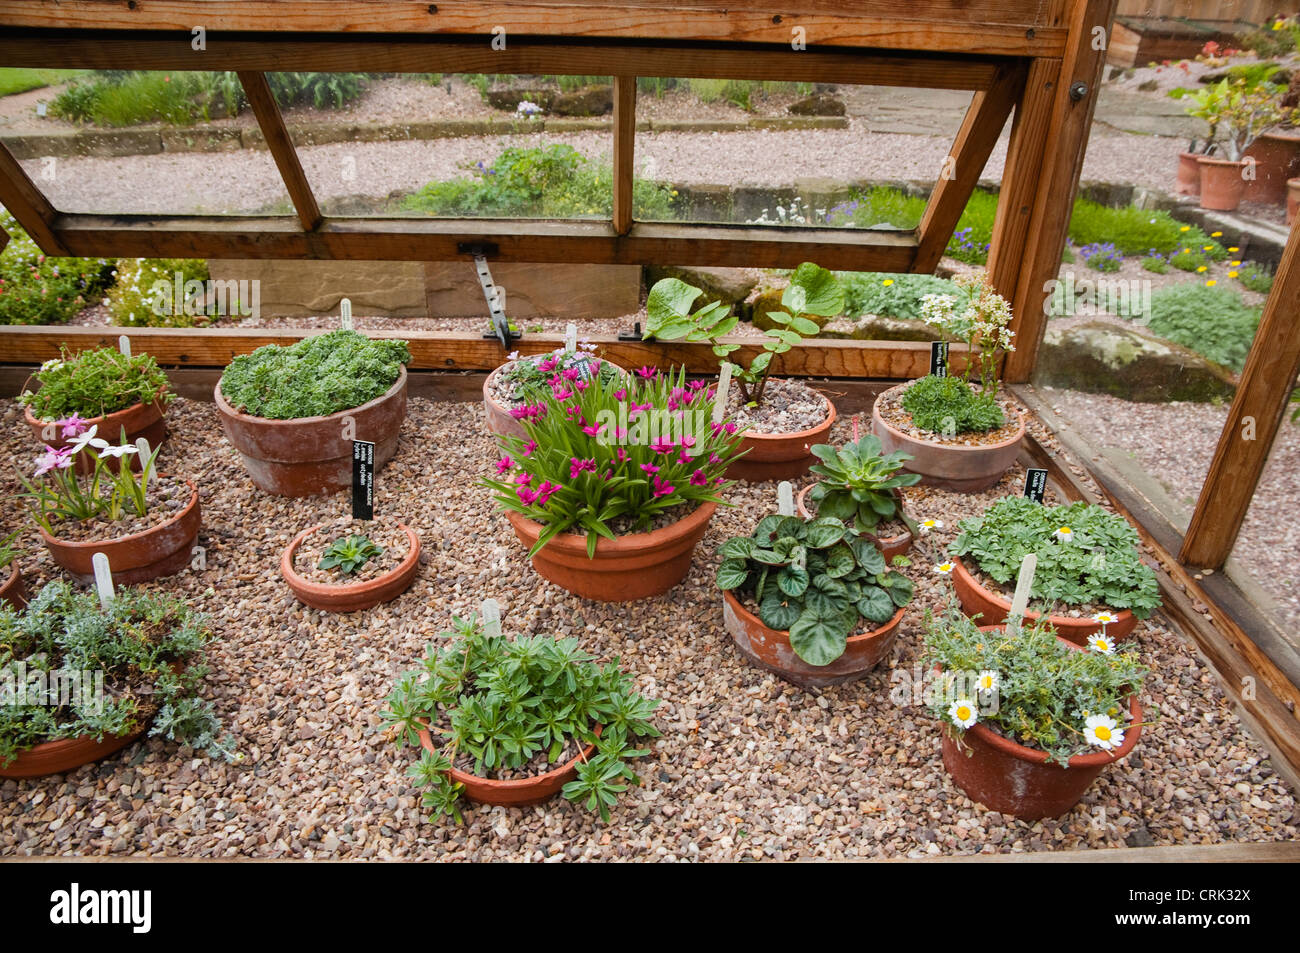 a variety of alpine plants growing in pots on gravel covered staging stock photo royalty free